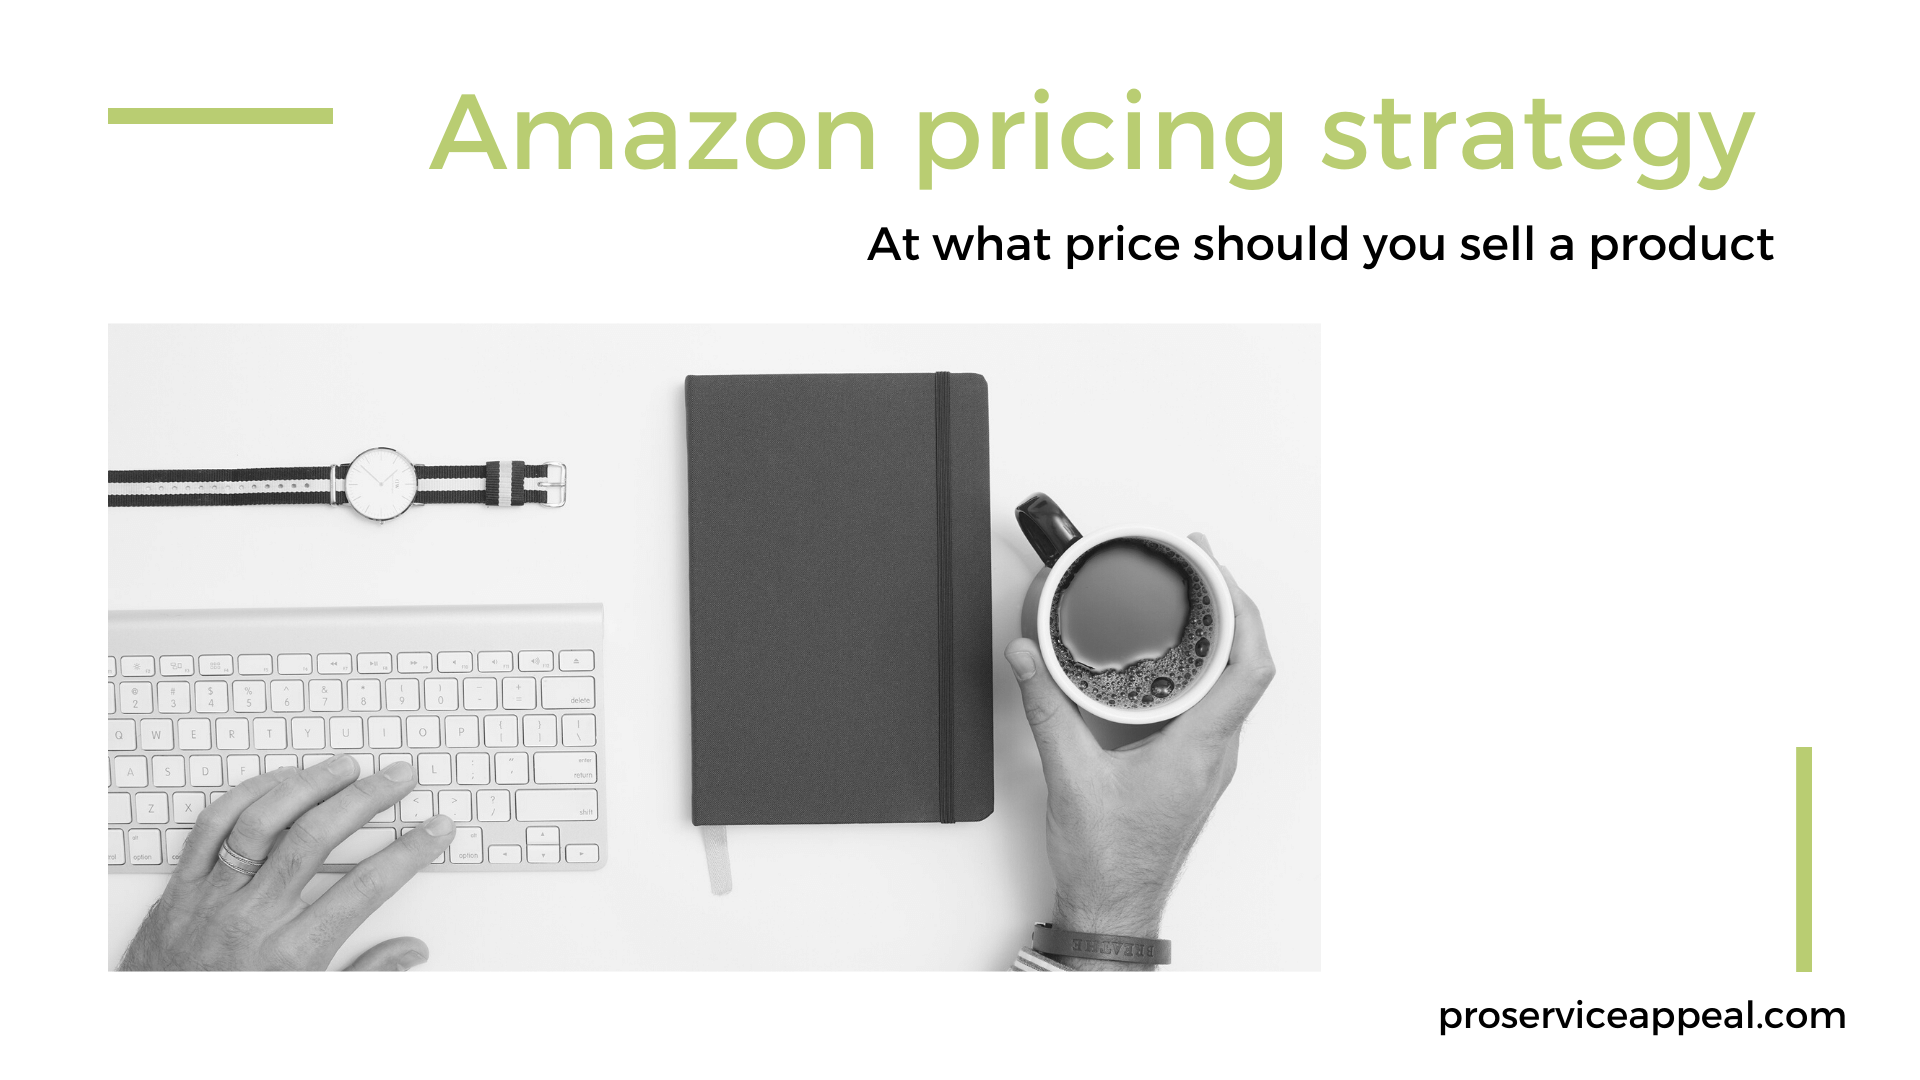 Amazon pricing strategy (1)